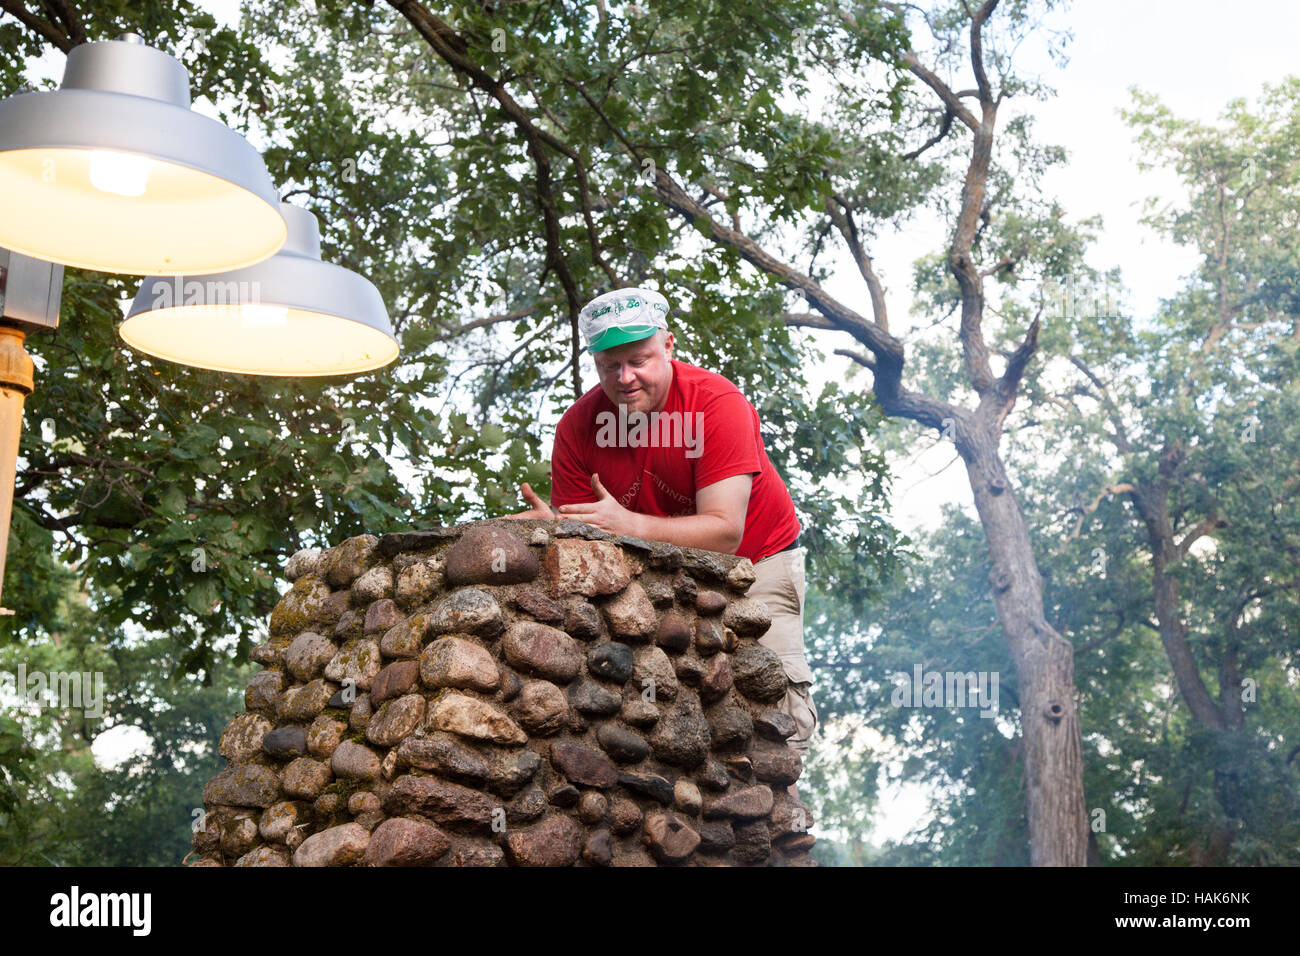 Man age 37 inspecting his out door fieldstone barbecue fireplace for chimney clogging soot. Clitherall Minnesota - Stock Image